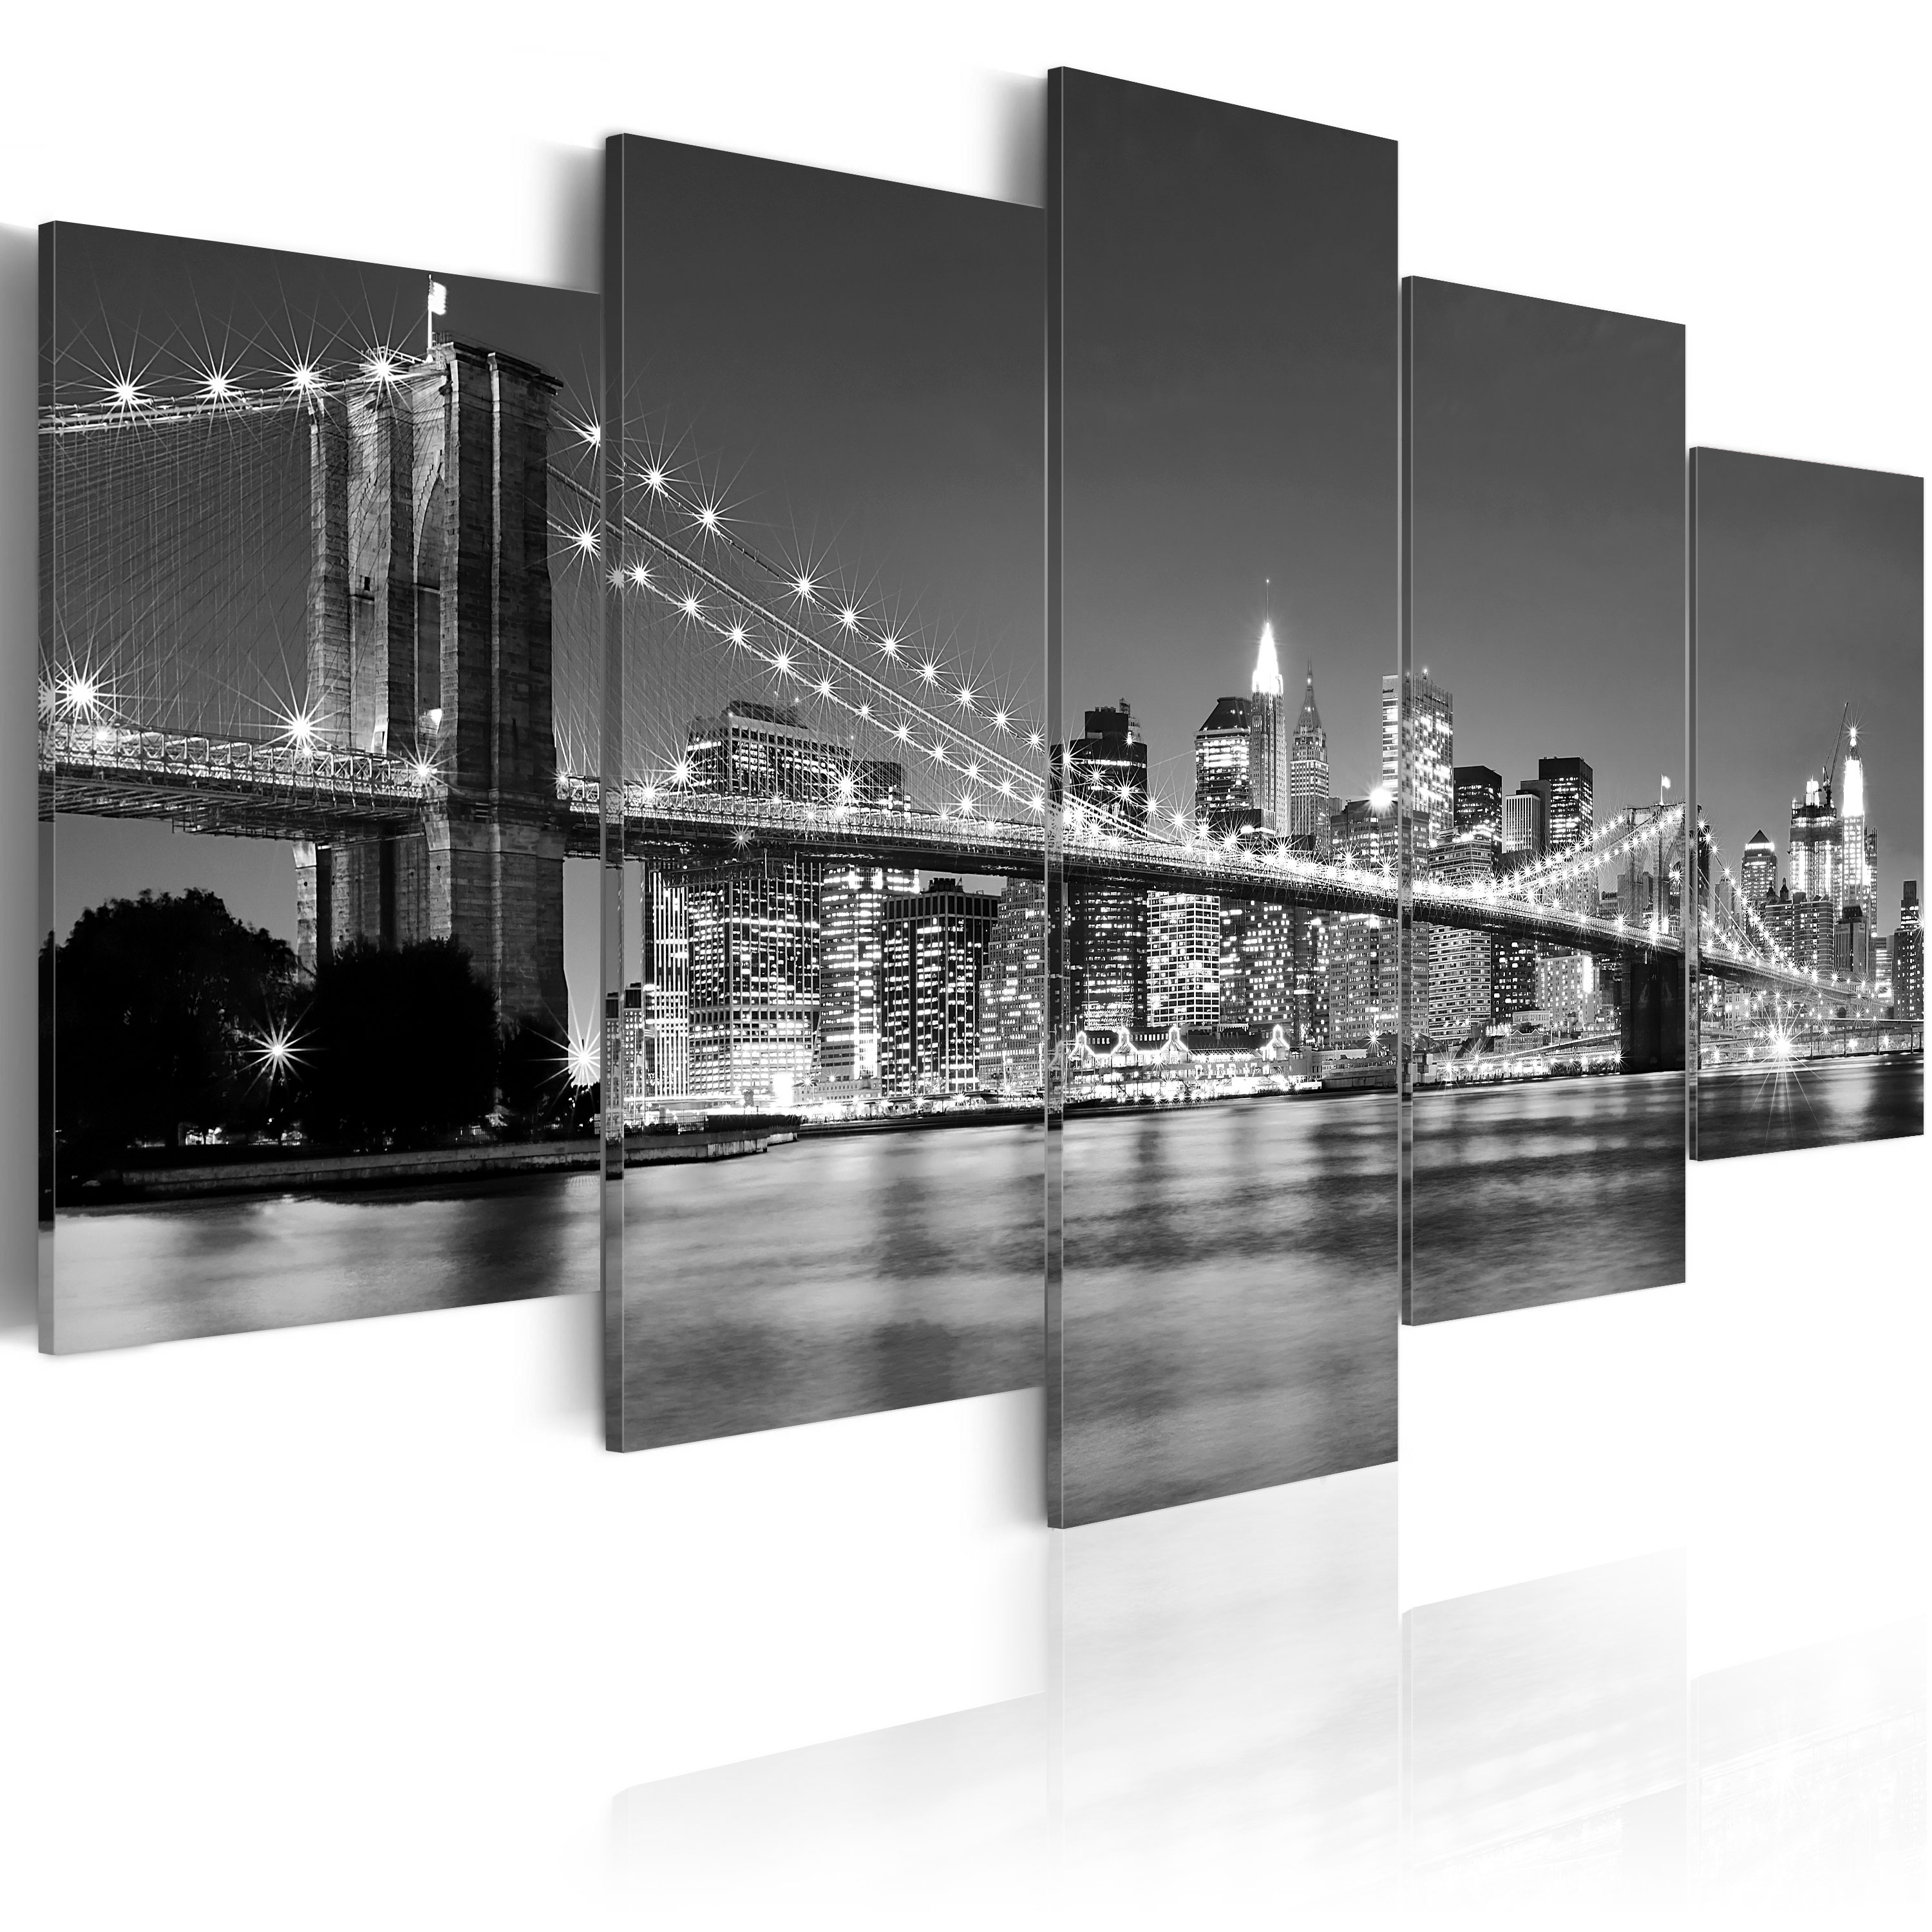 Cuadros-en-Lienzo-XXL-Decoracion-de-la-Pared-NEW-YORK-030211-51